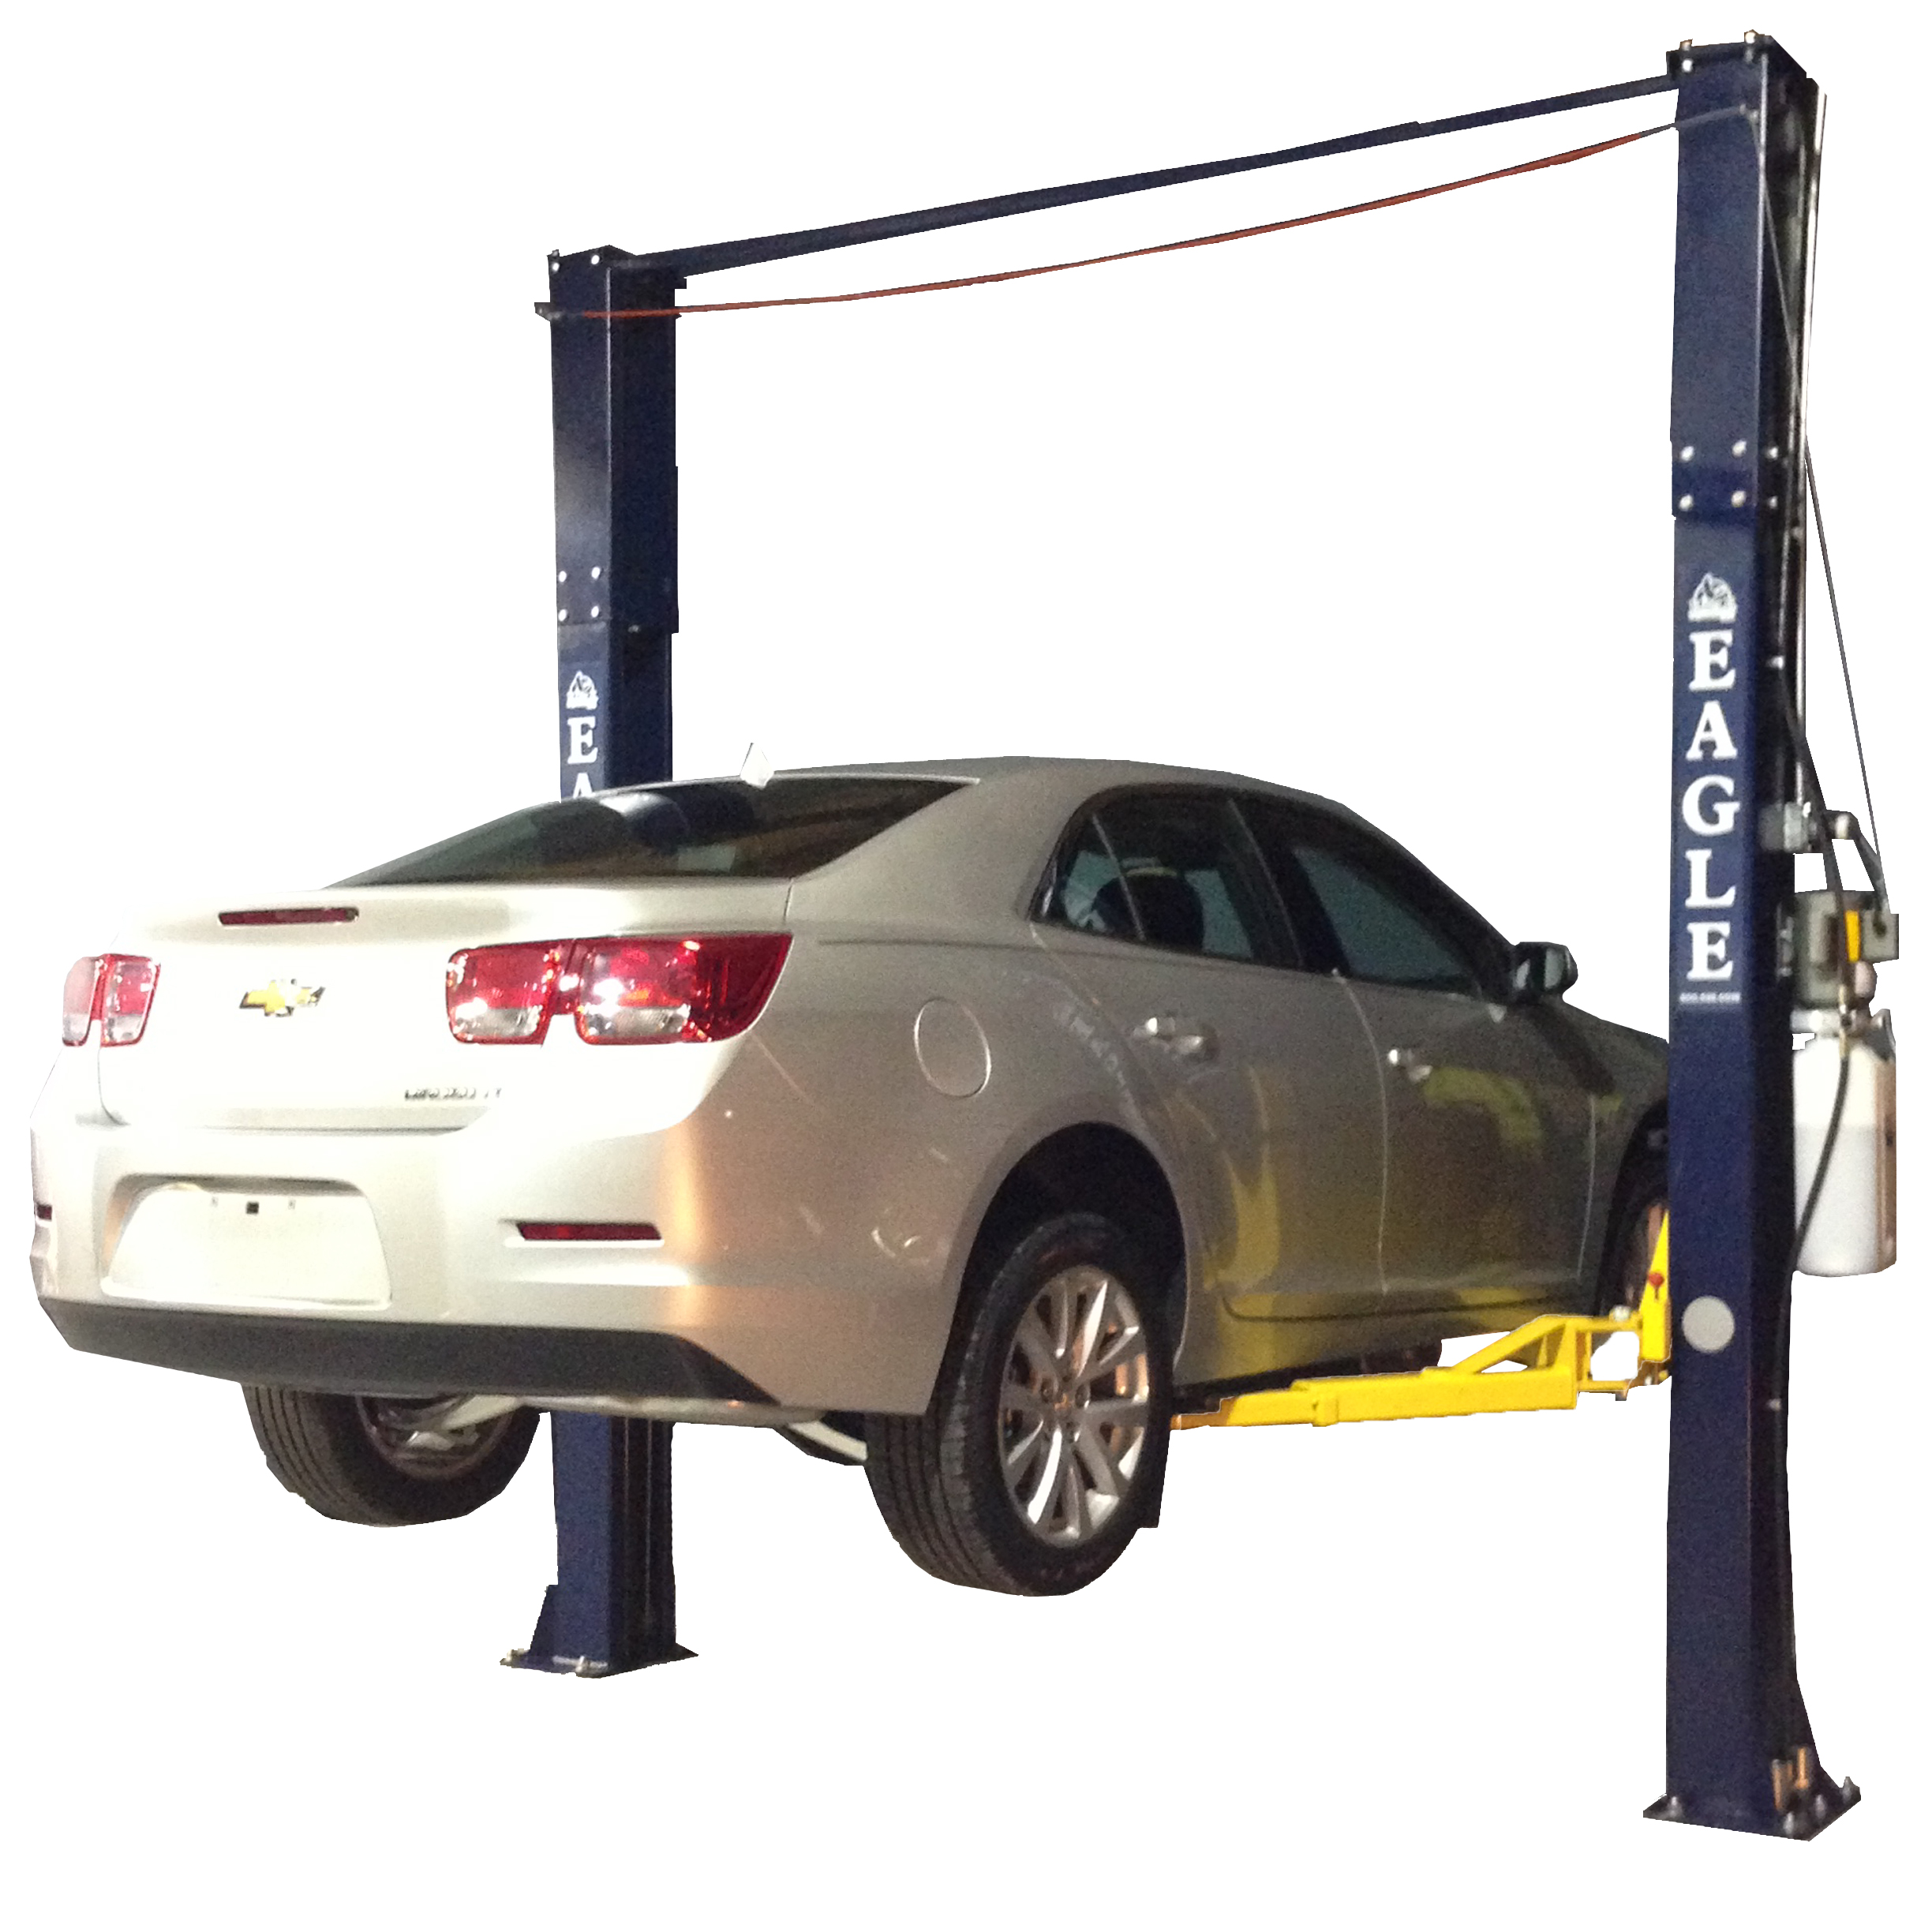 MTP-9A two-post car lift